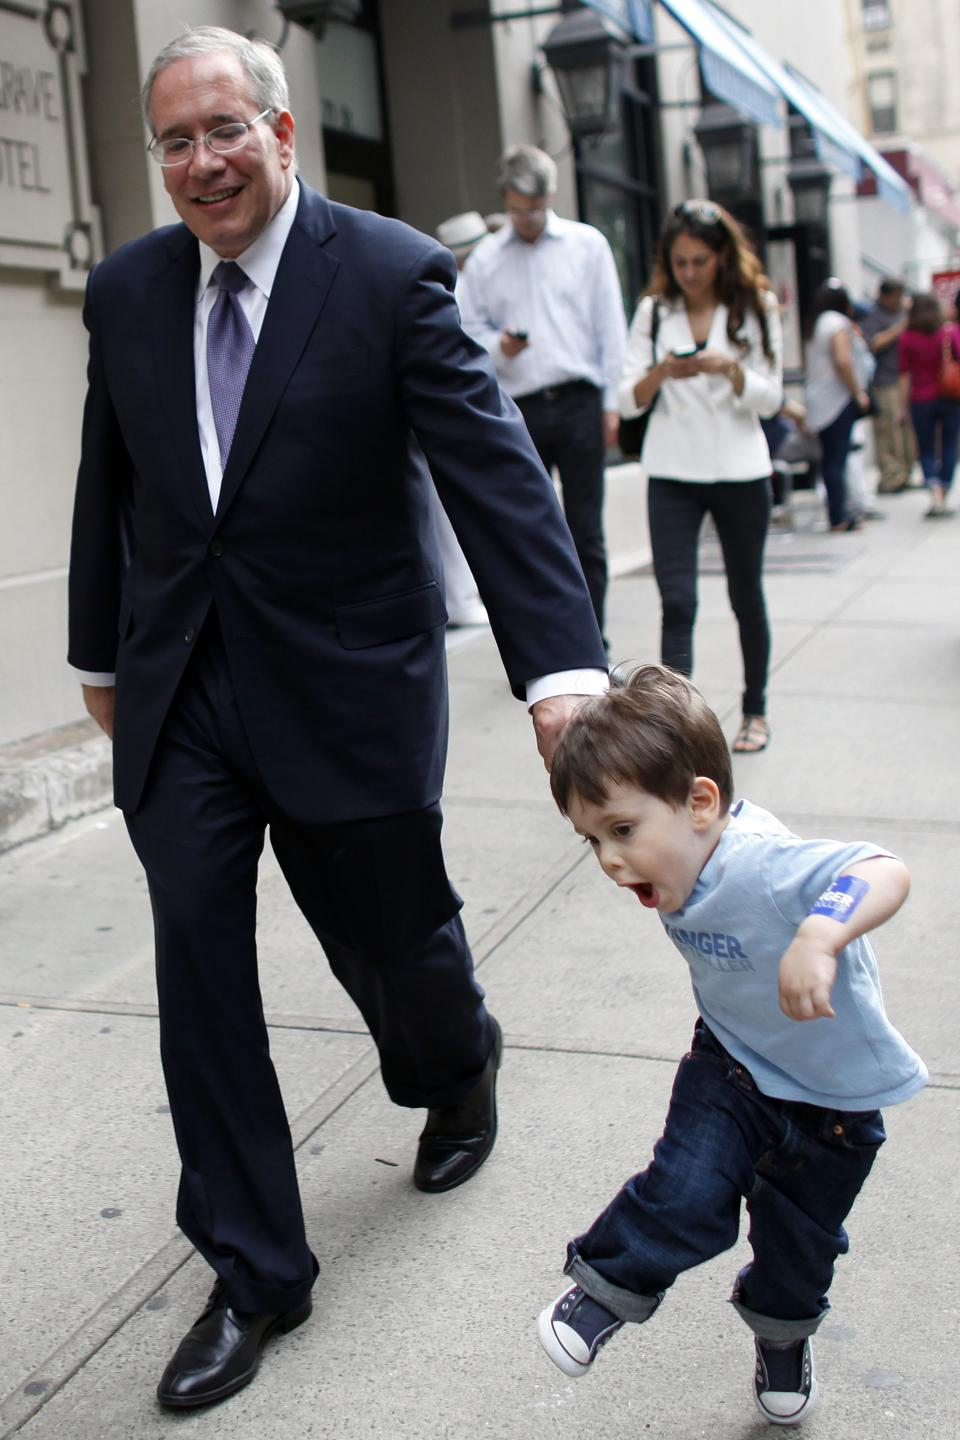 Manhattan Borough President Scott Stringer leaves a polling station with his 20-month old son Max after casting his ballot during the primary election, Tuesday, Sept. 10, 2013, in New York. Stringer is running against Ex-Gov. Eliot Spitzer for city comptroller. (AP Photo/Jason DeCrow)